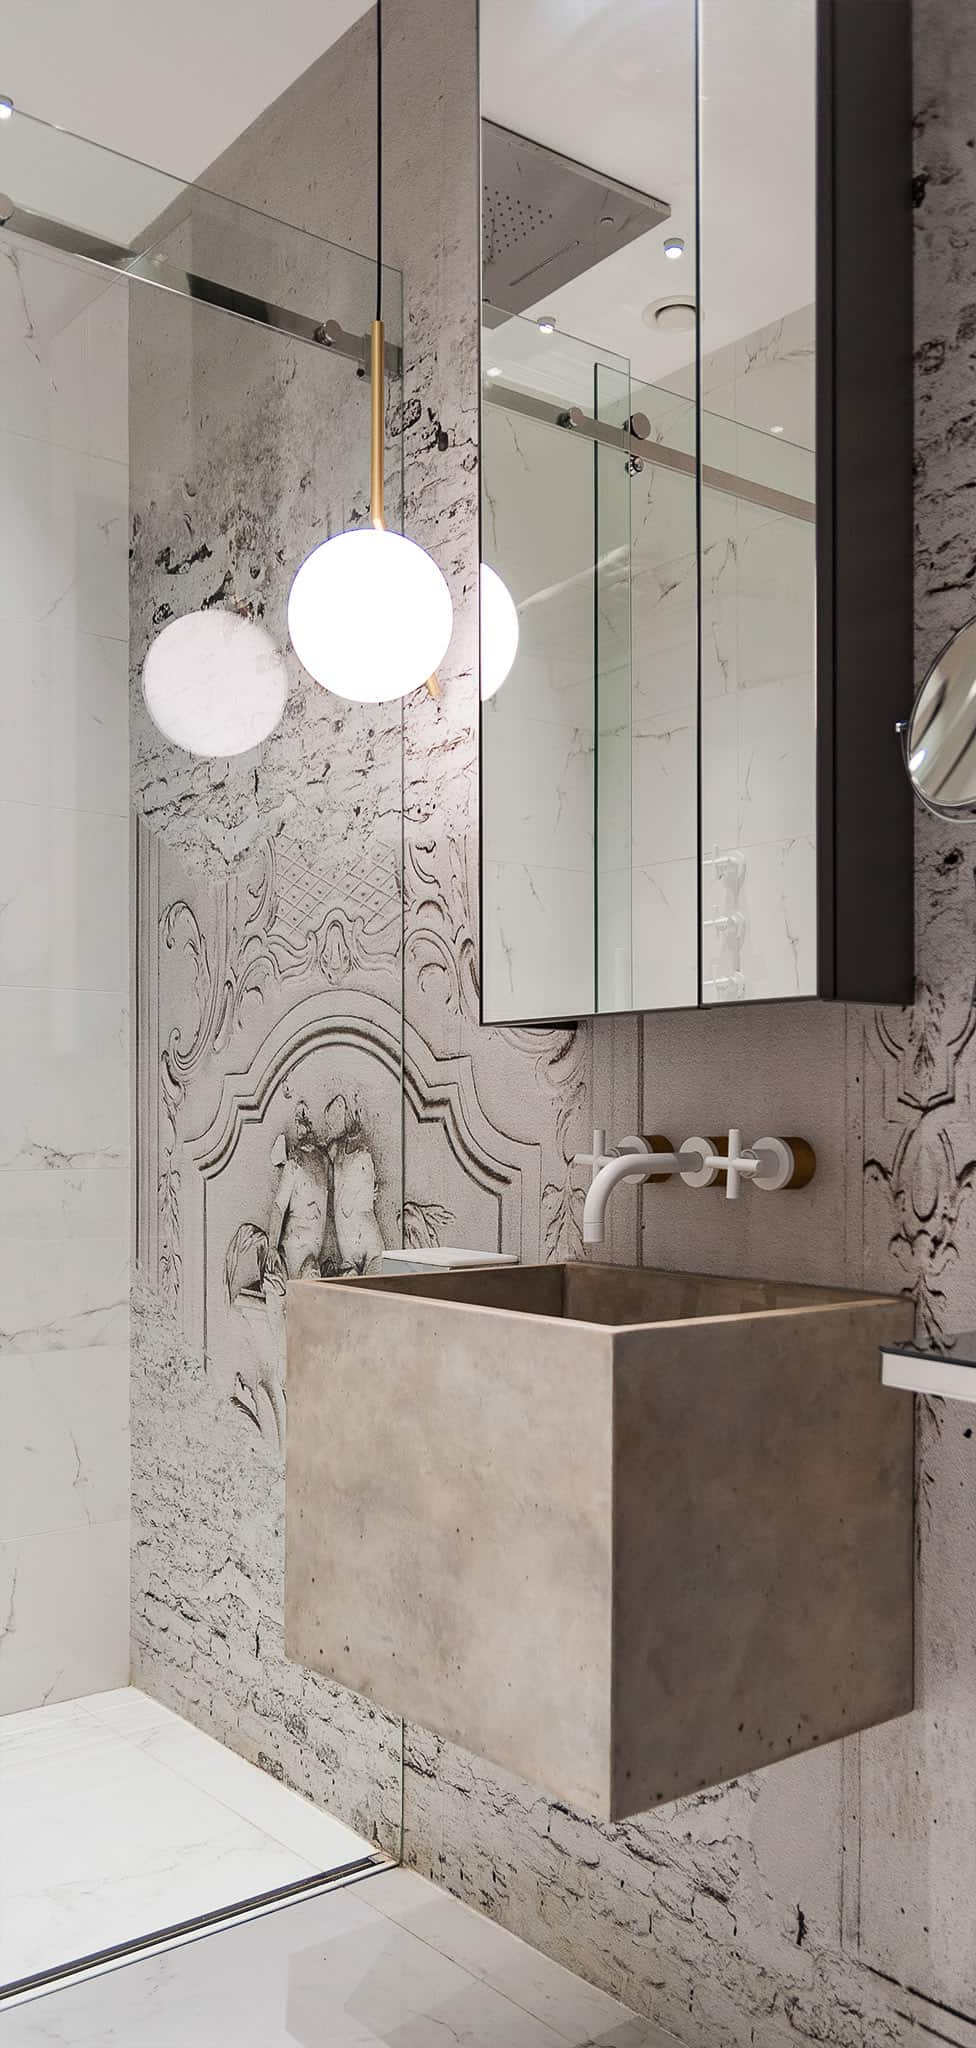 Molding patterns give the bath that 19th century look